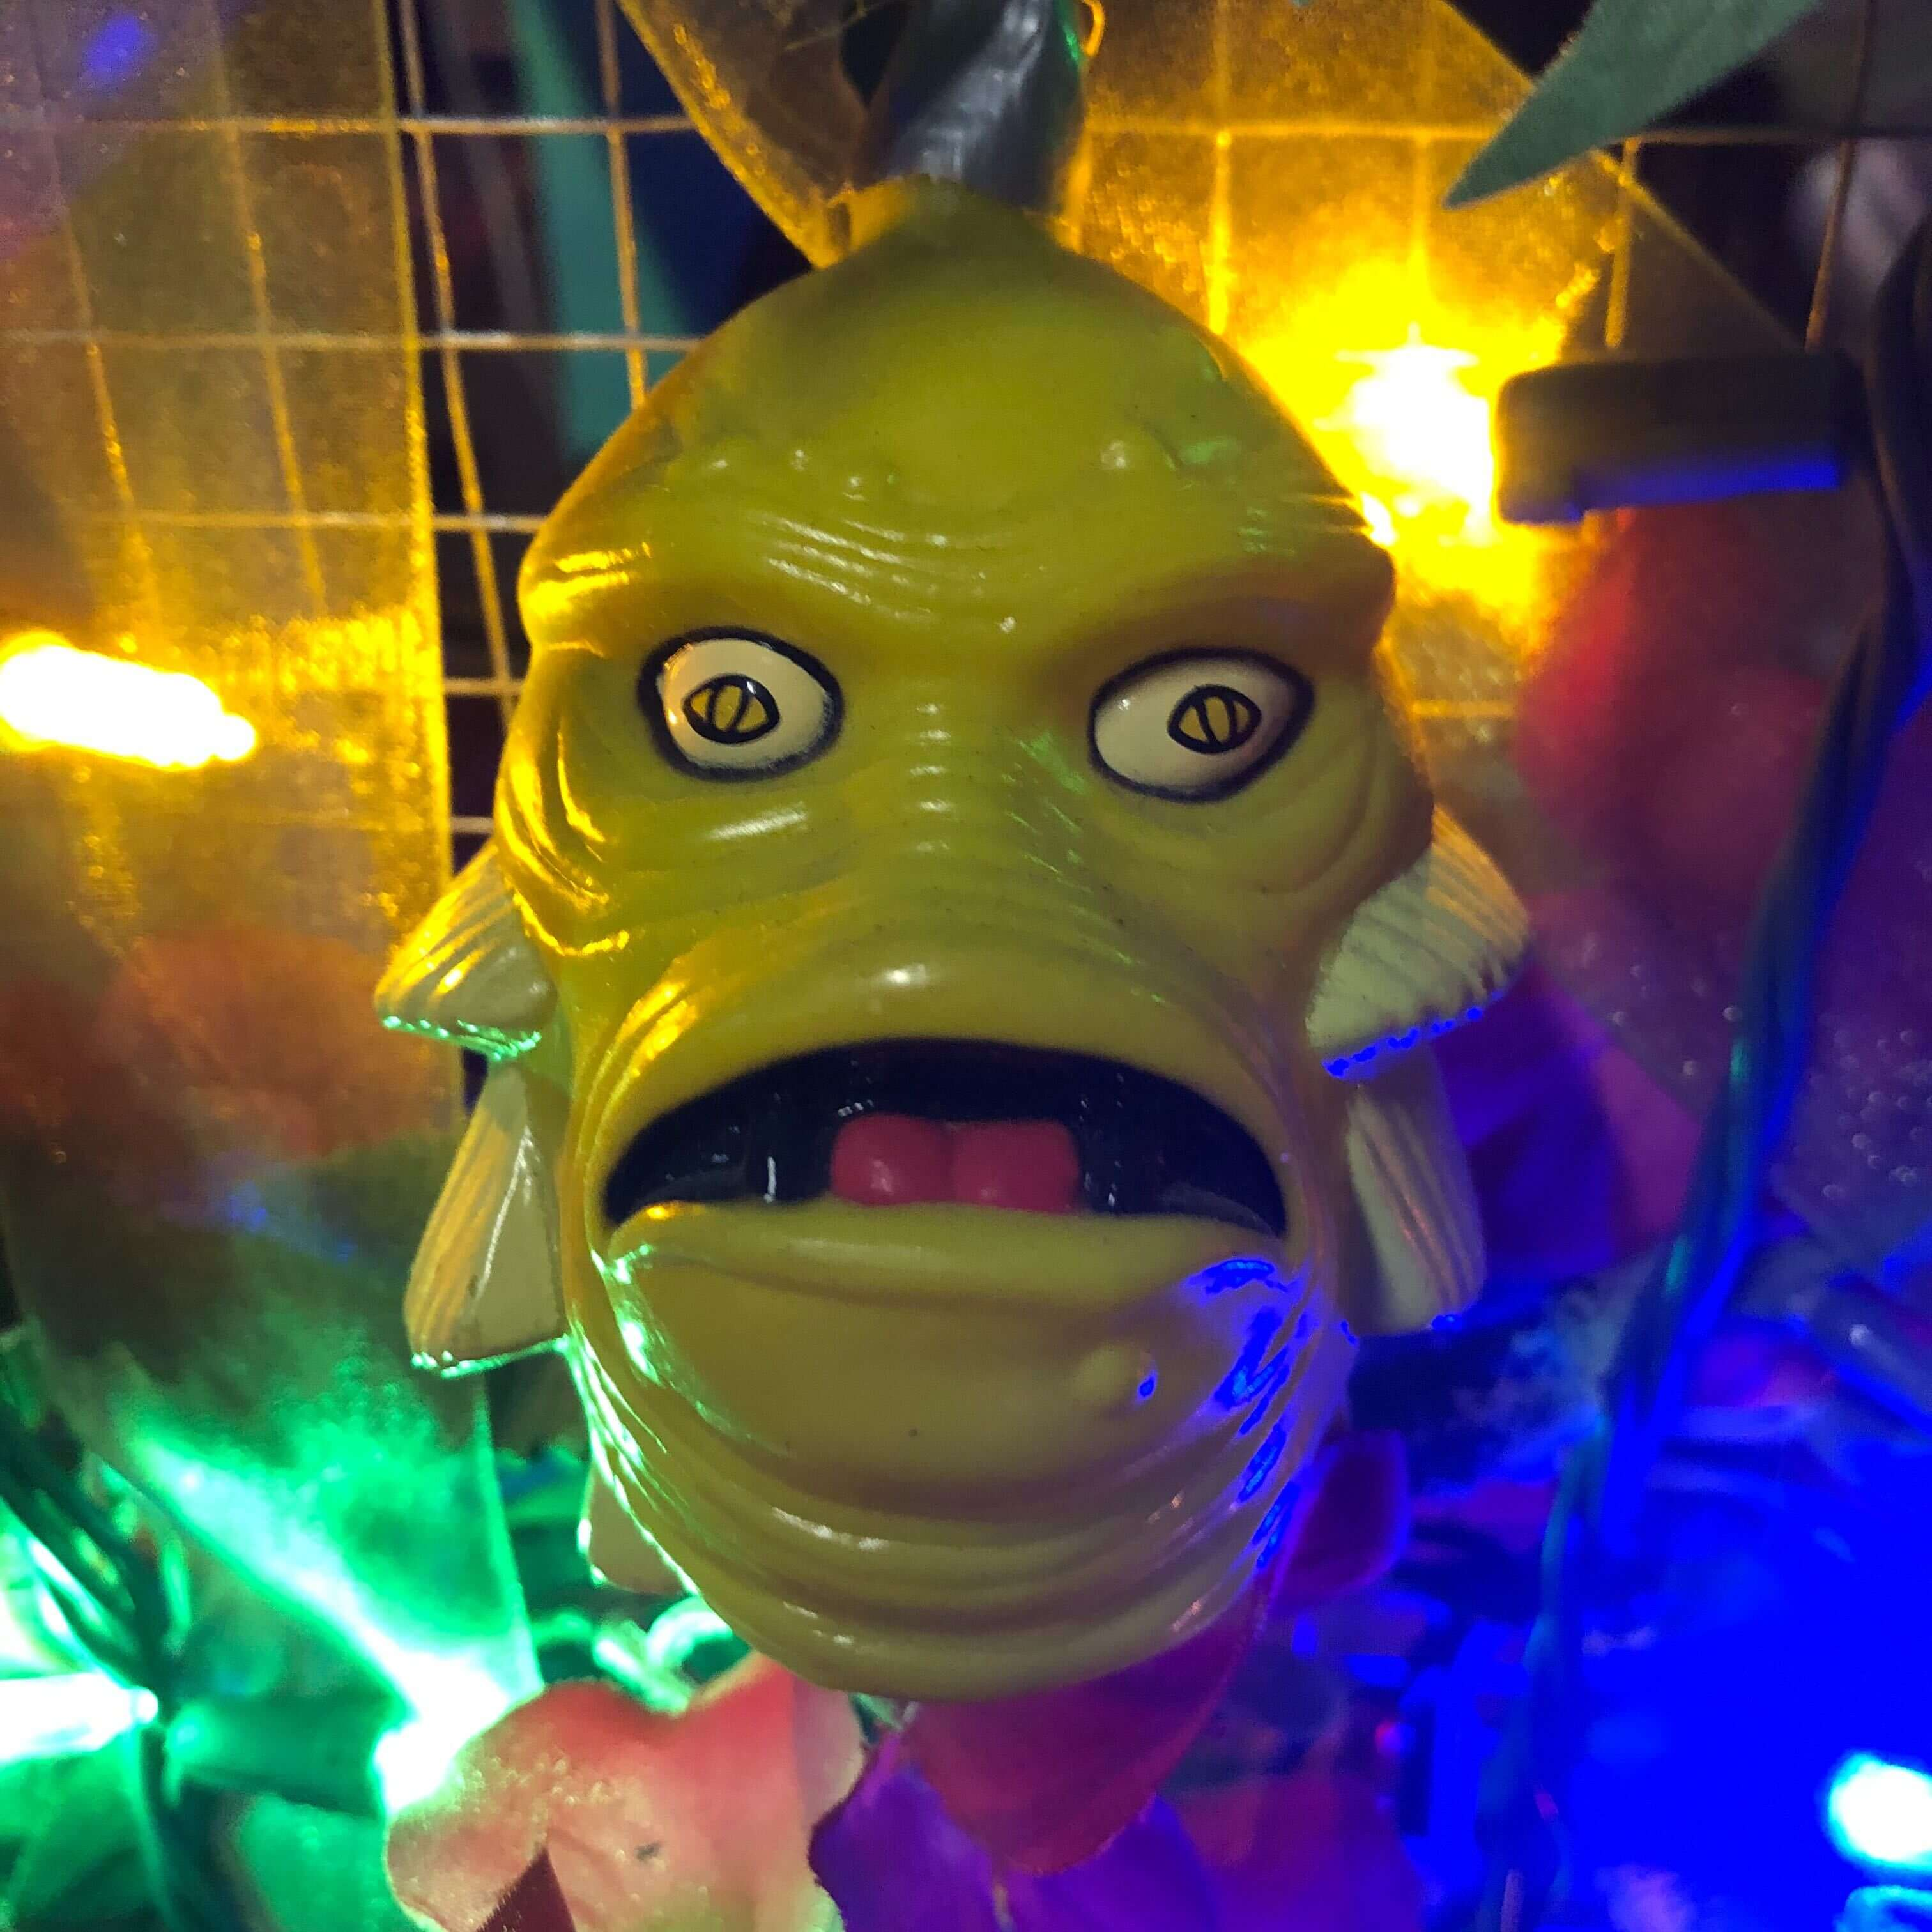 Closeup of the Creature from the Black Lagoon